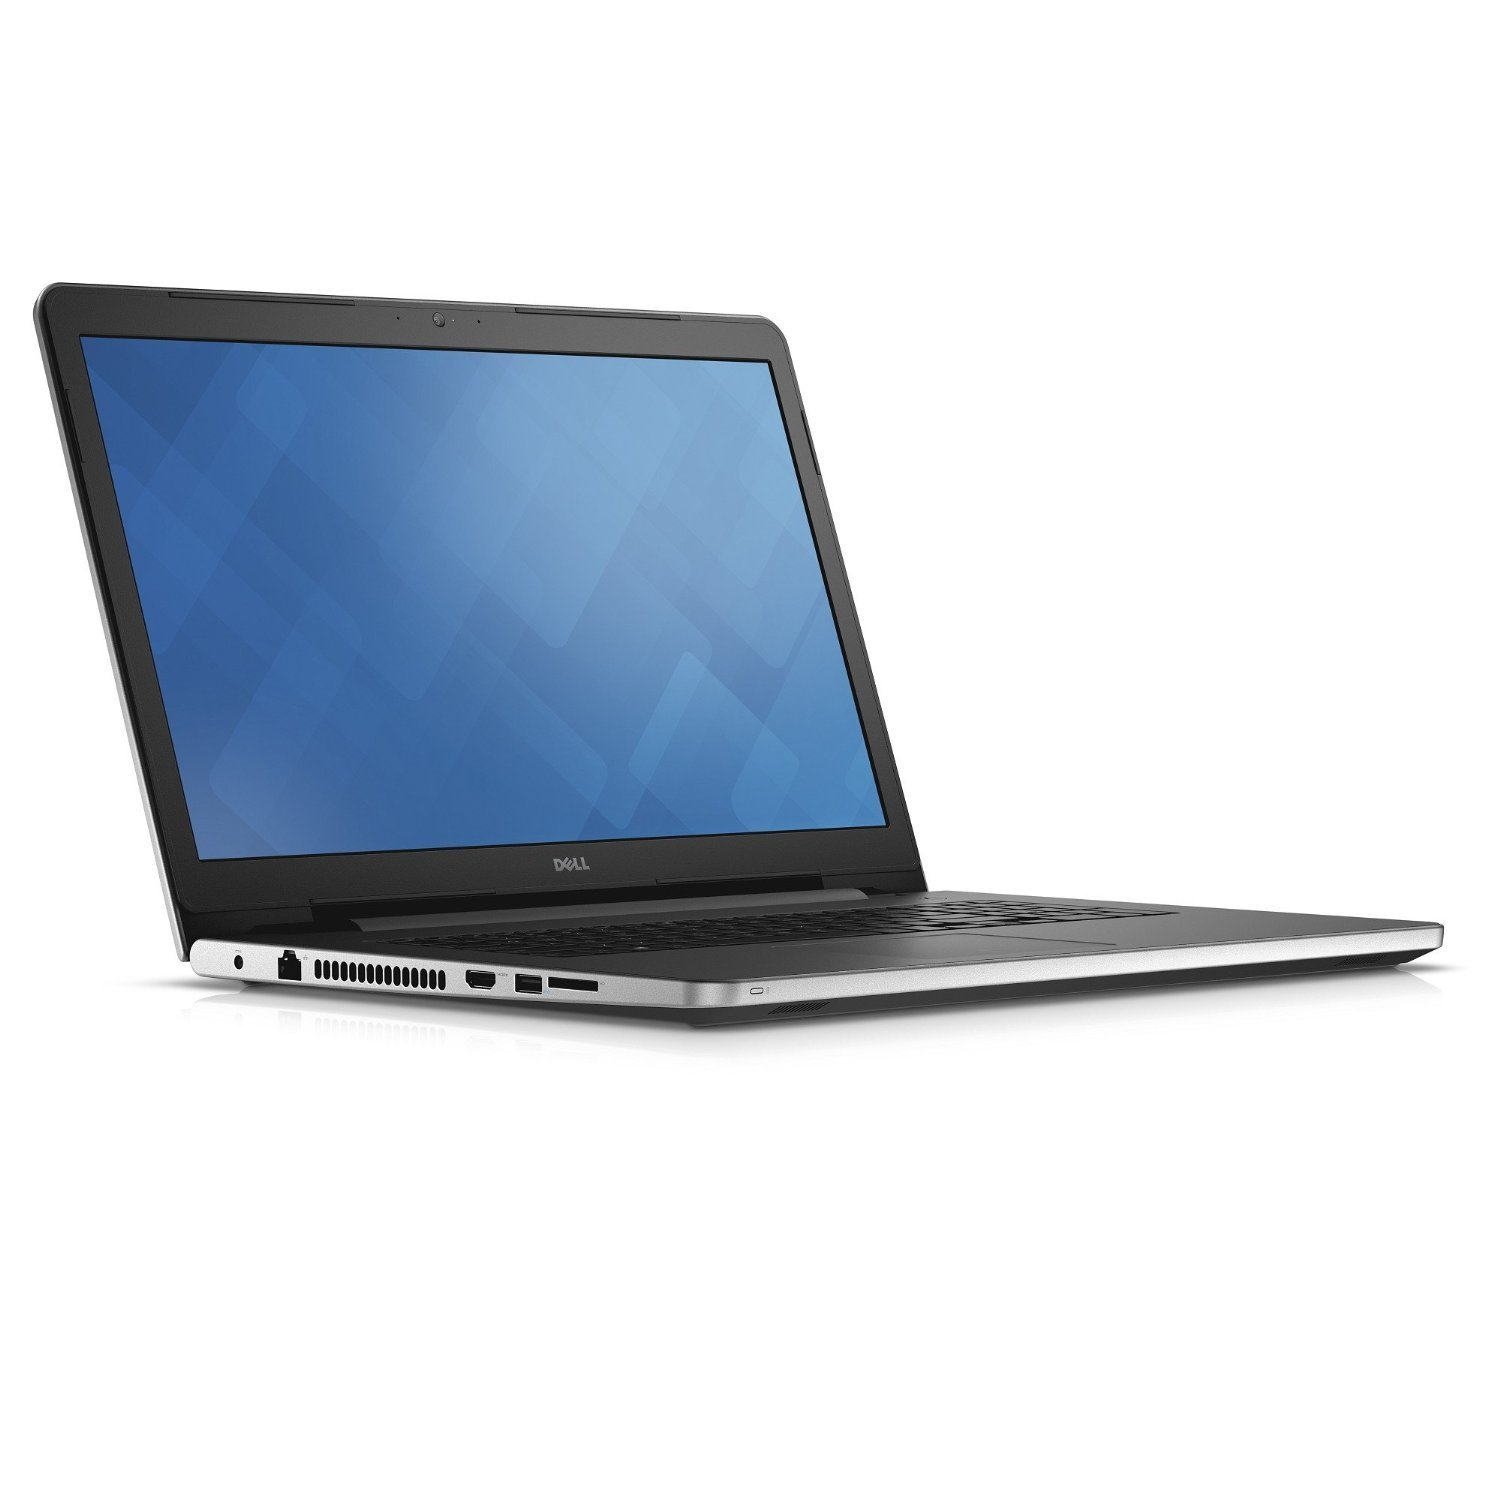 Dell Inspiron 17 5759 Laptop Review